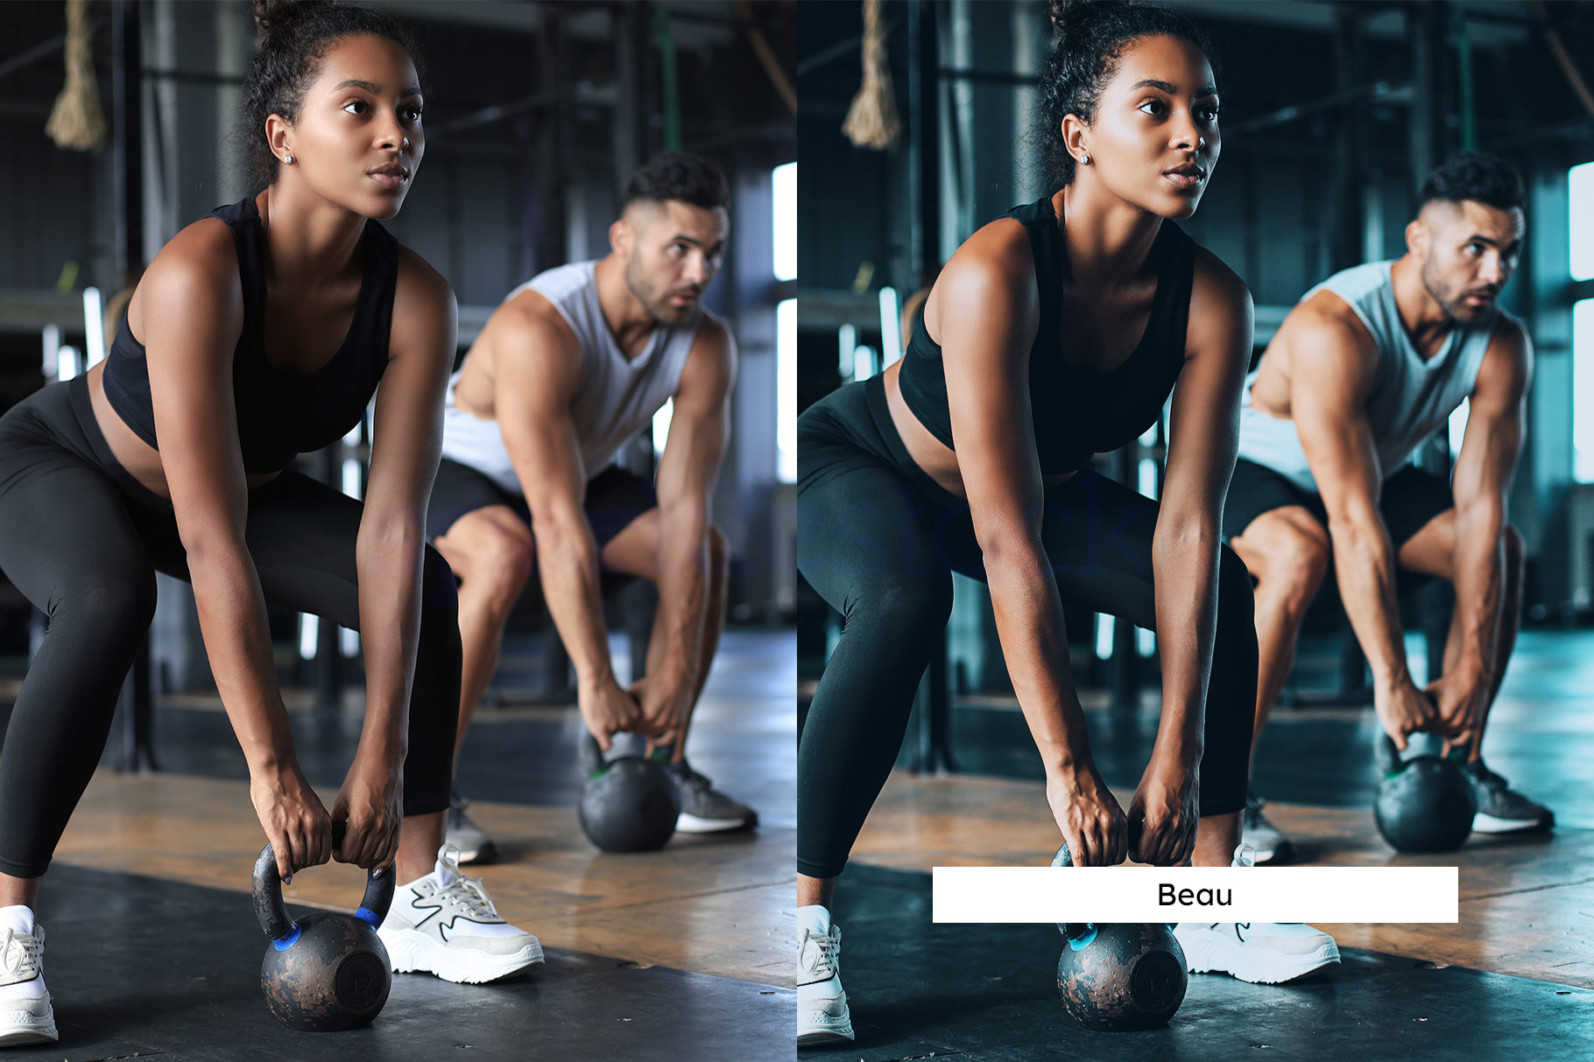 20 Workout Lightroom Presets and LUTs - 03 1 45 -